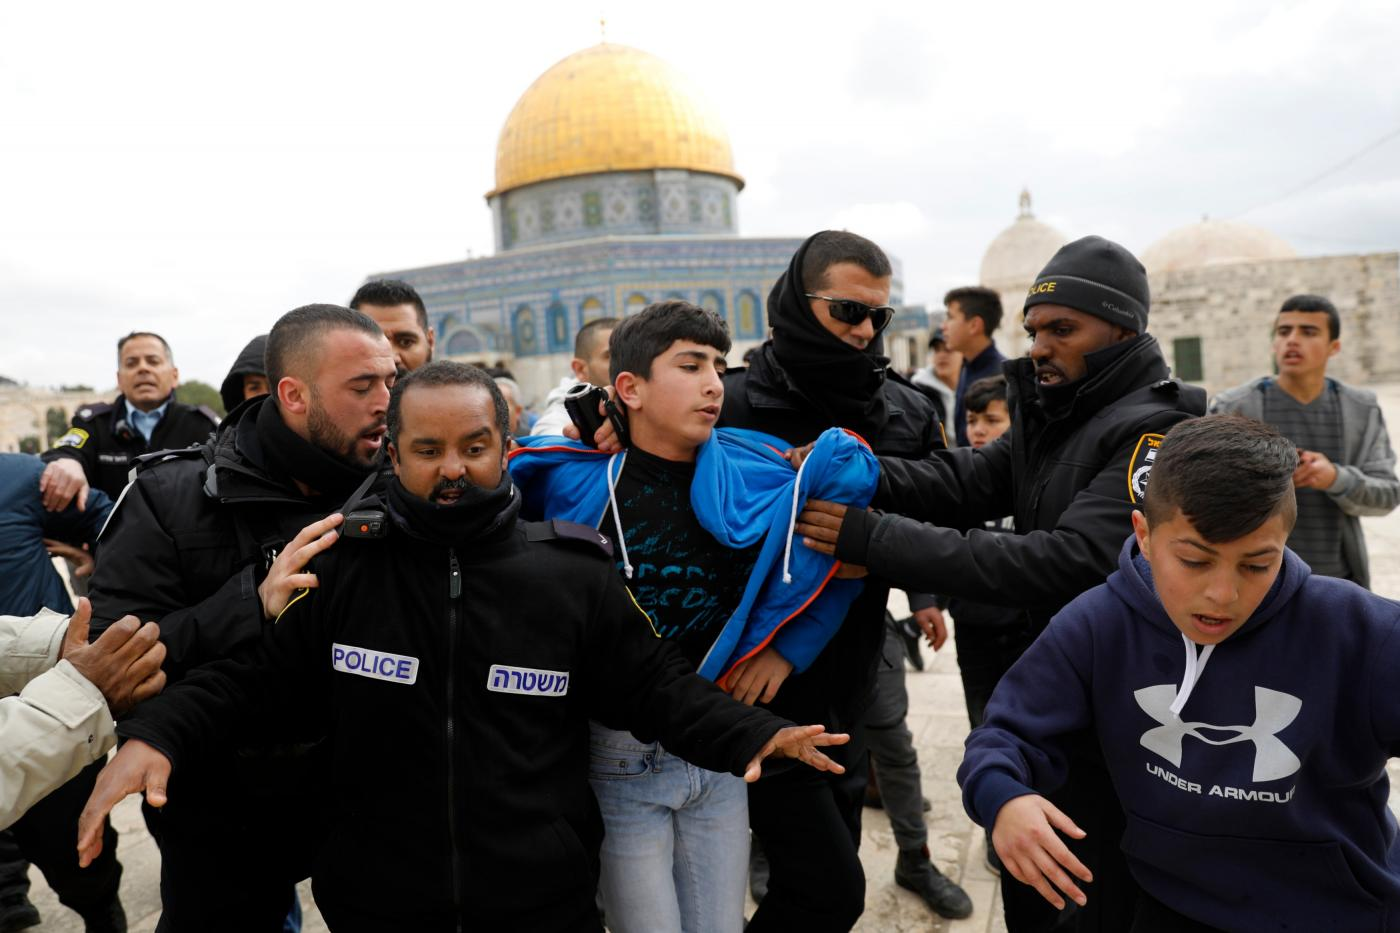 Israeli policemen detain a young Palestinian demonstrator after protesters tried to break the lock on a gate at the al-Aqsa mosque compound in Jerusalem's Old City on 18 February 2019 (AFP)